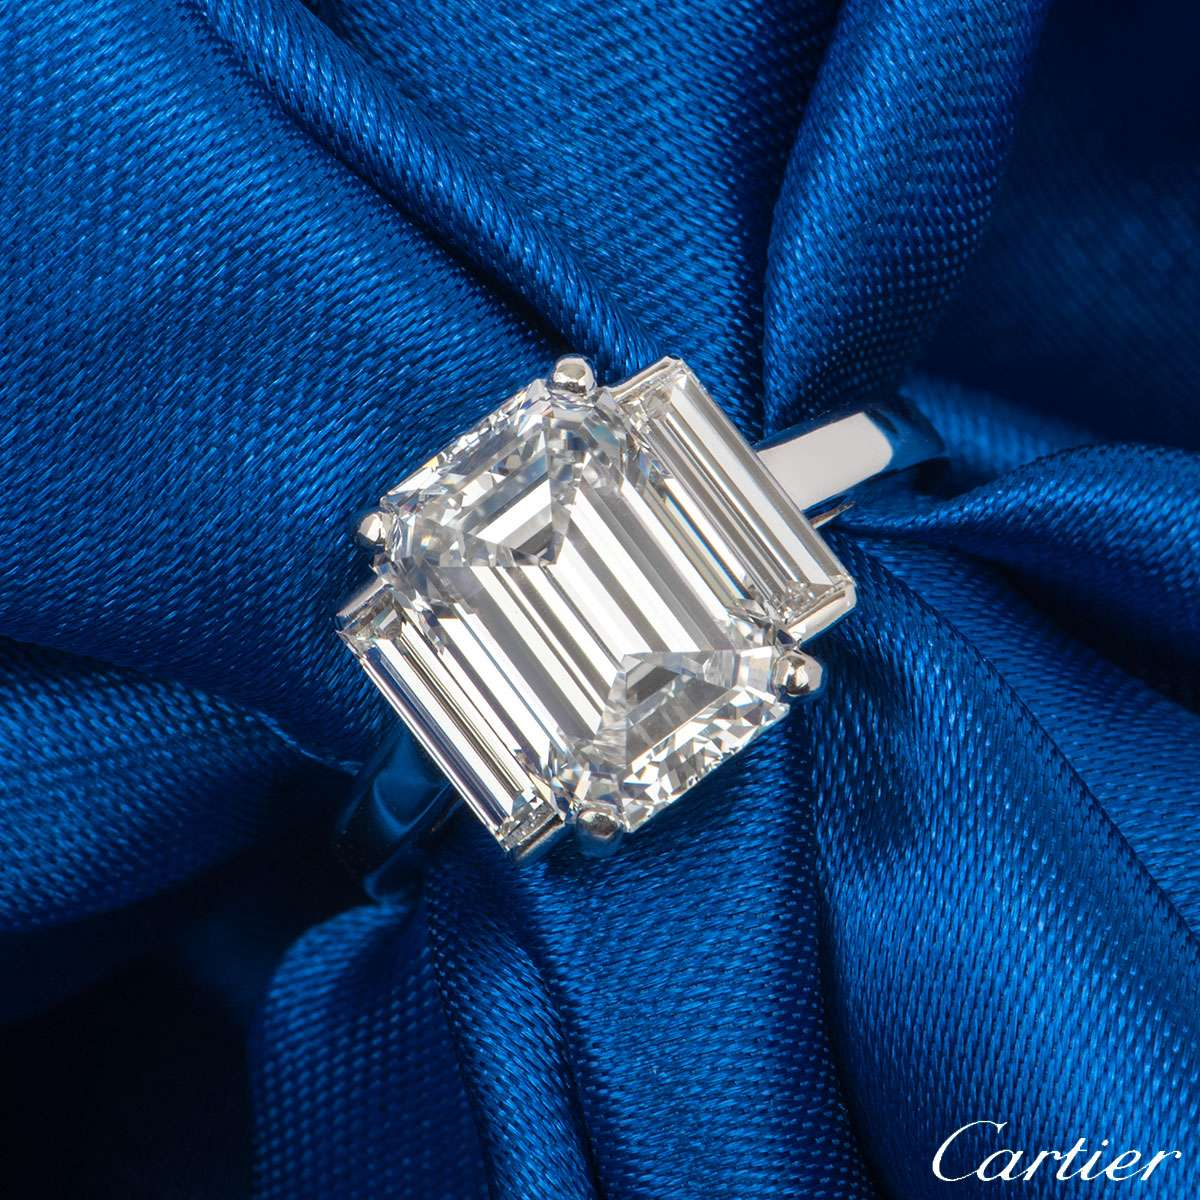 Cartier Emerald Cut Diamond Platinum Ring 3.36ct F/VS1